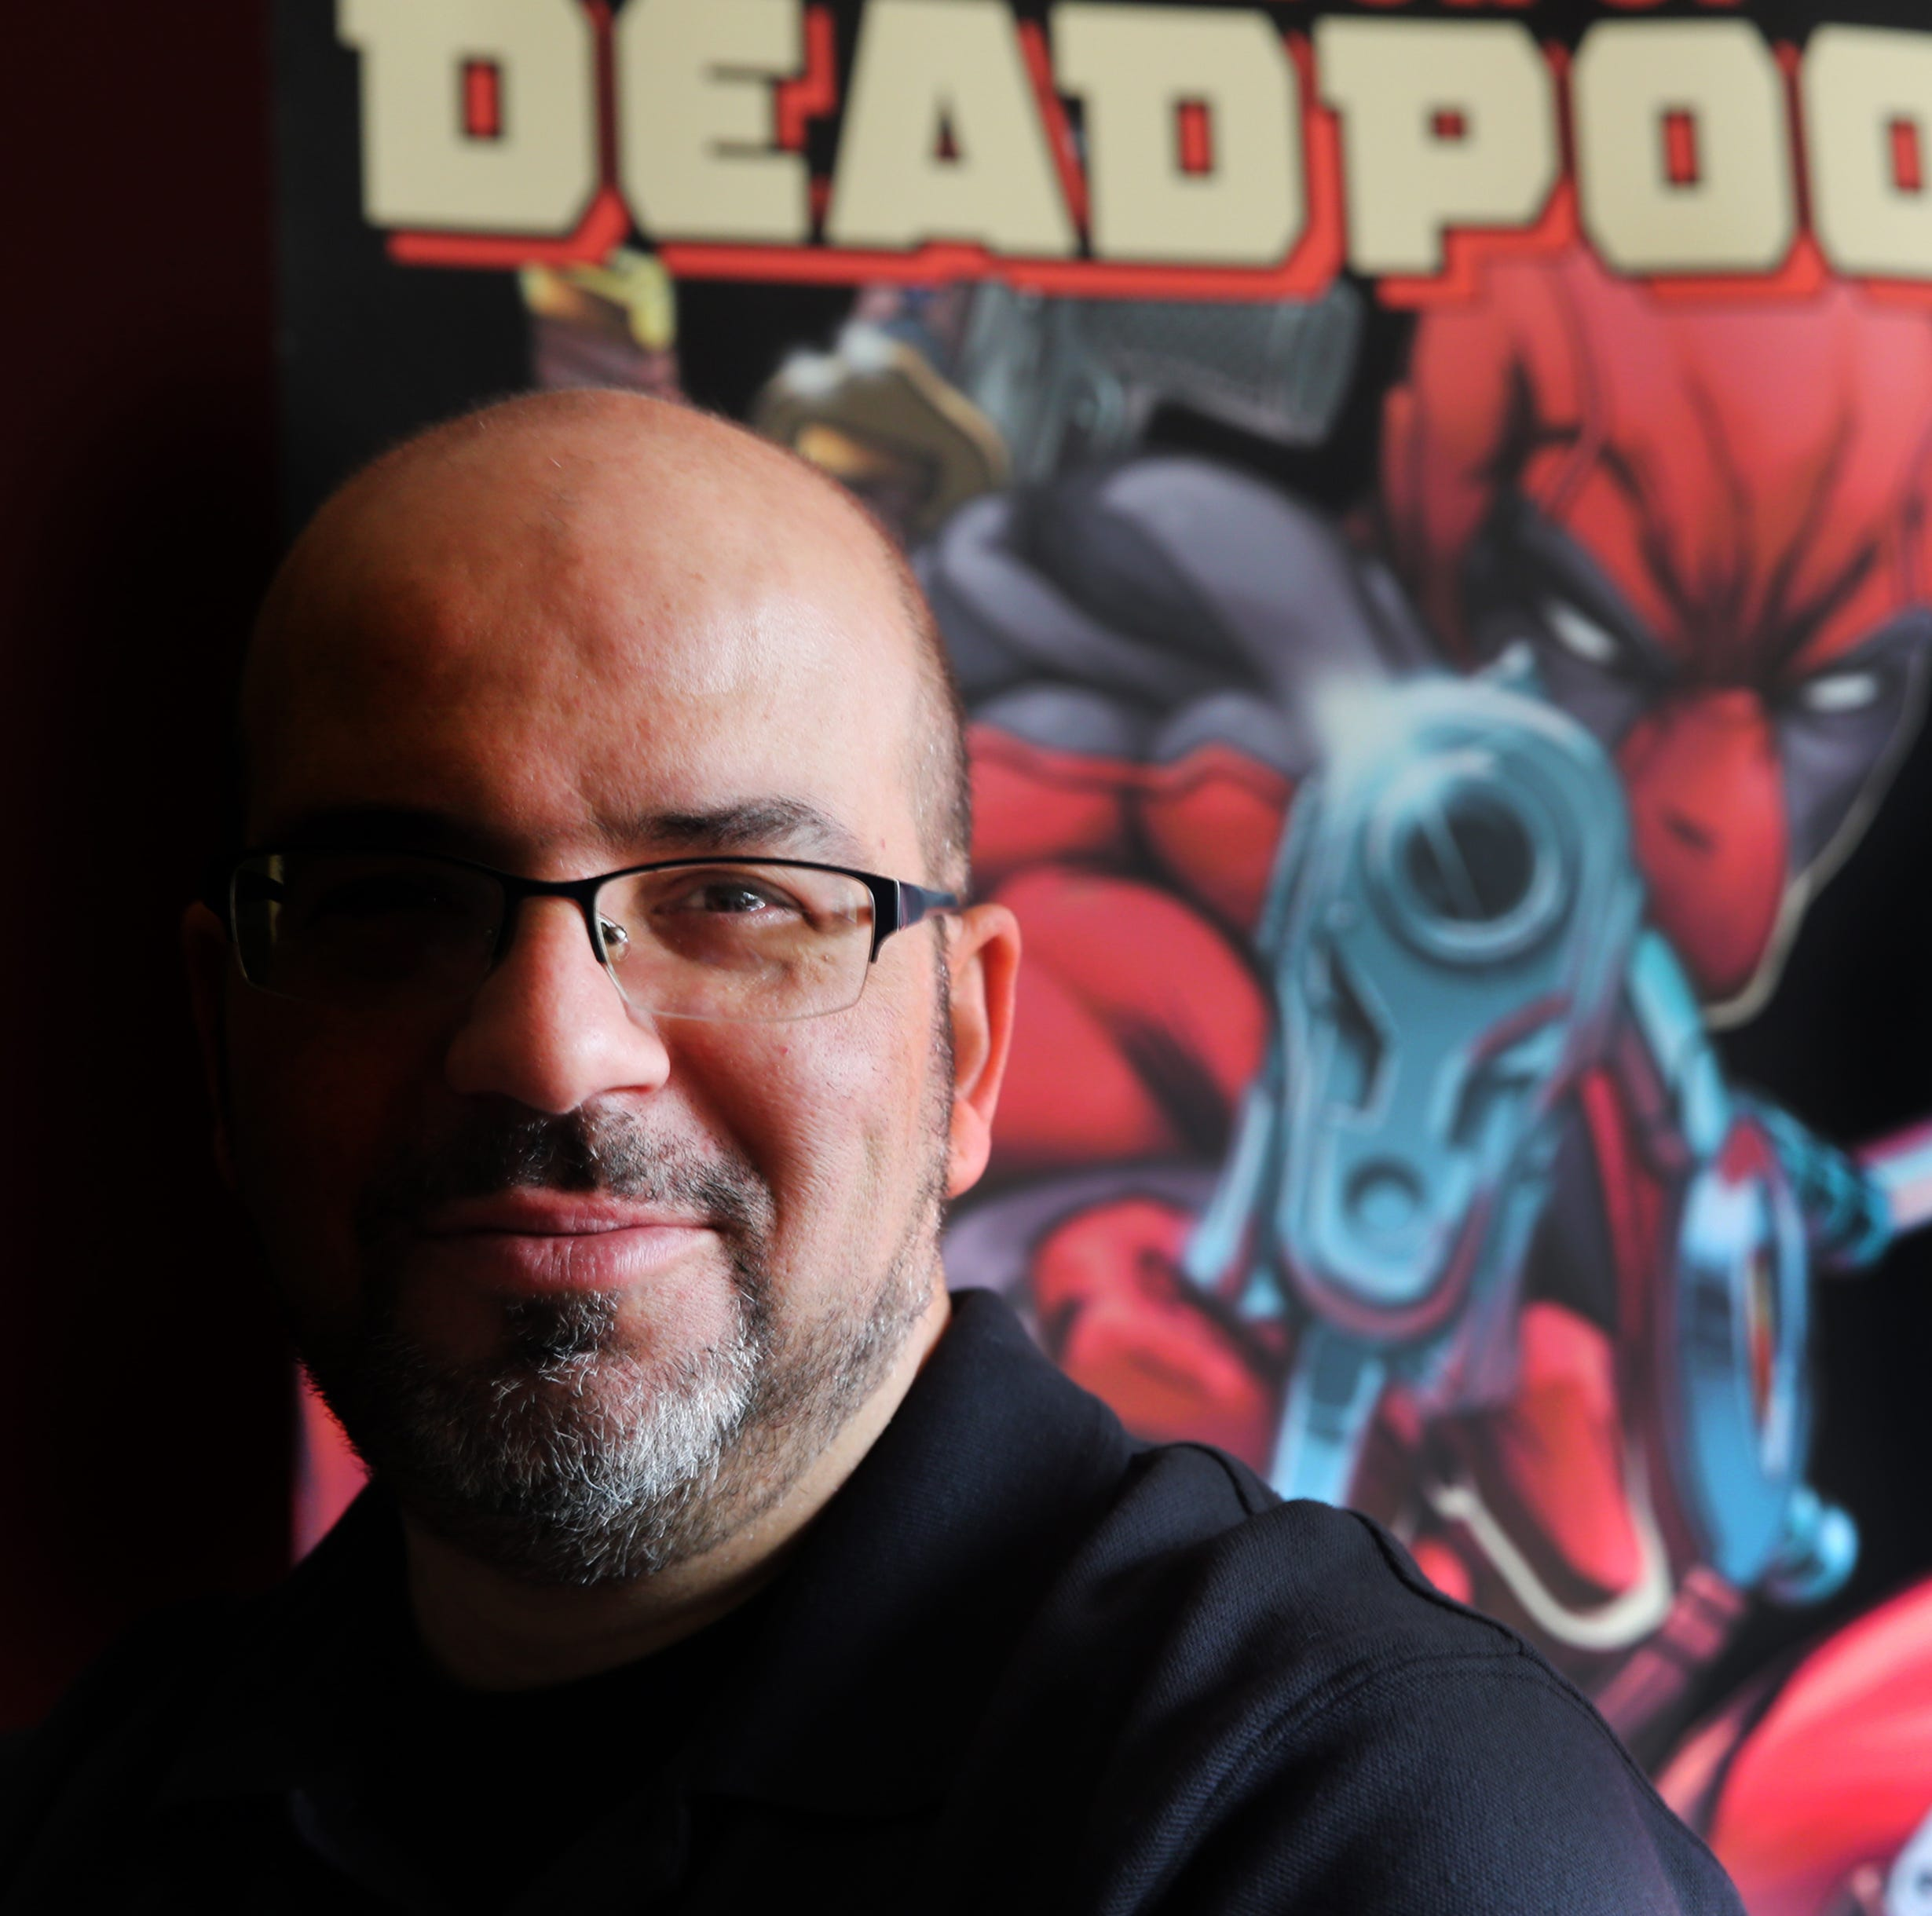 Deadpool co-creator appearing Saturday at River Region Comic Con